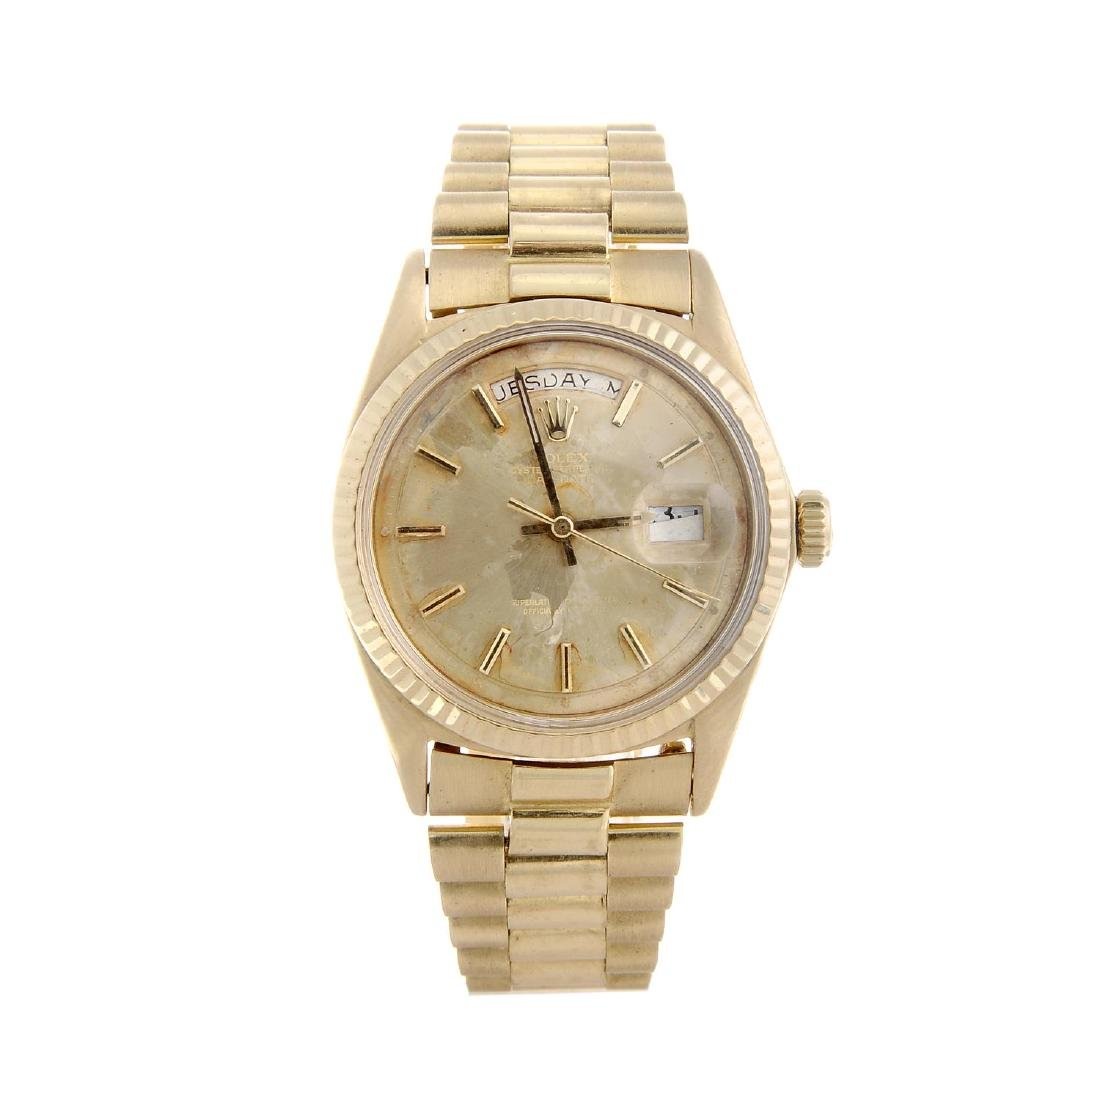 ROLEX - a gentleman's Oyster Perpetual Day-Date